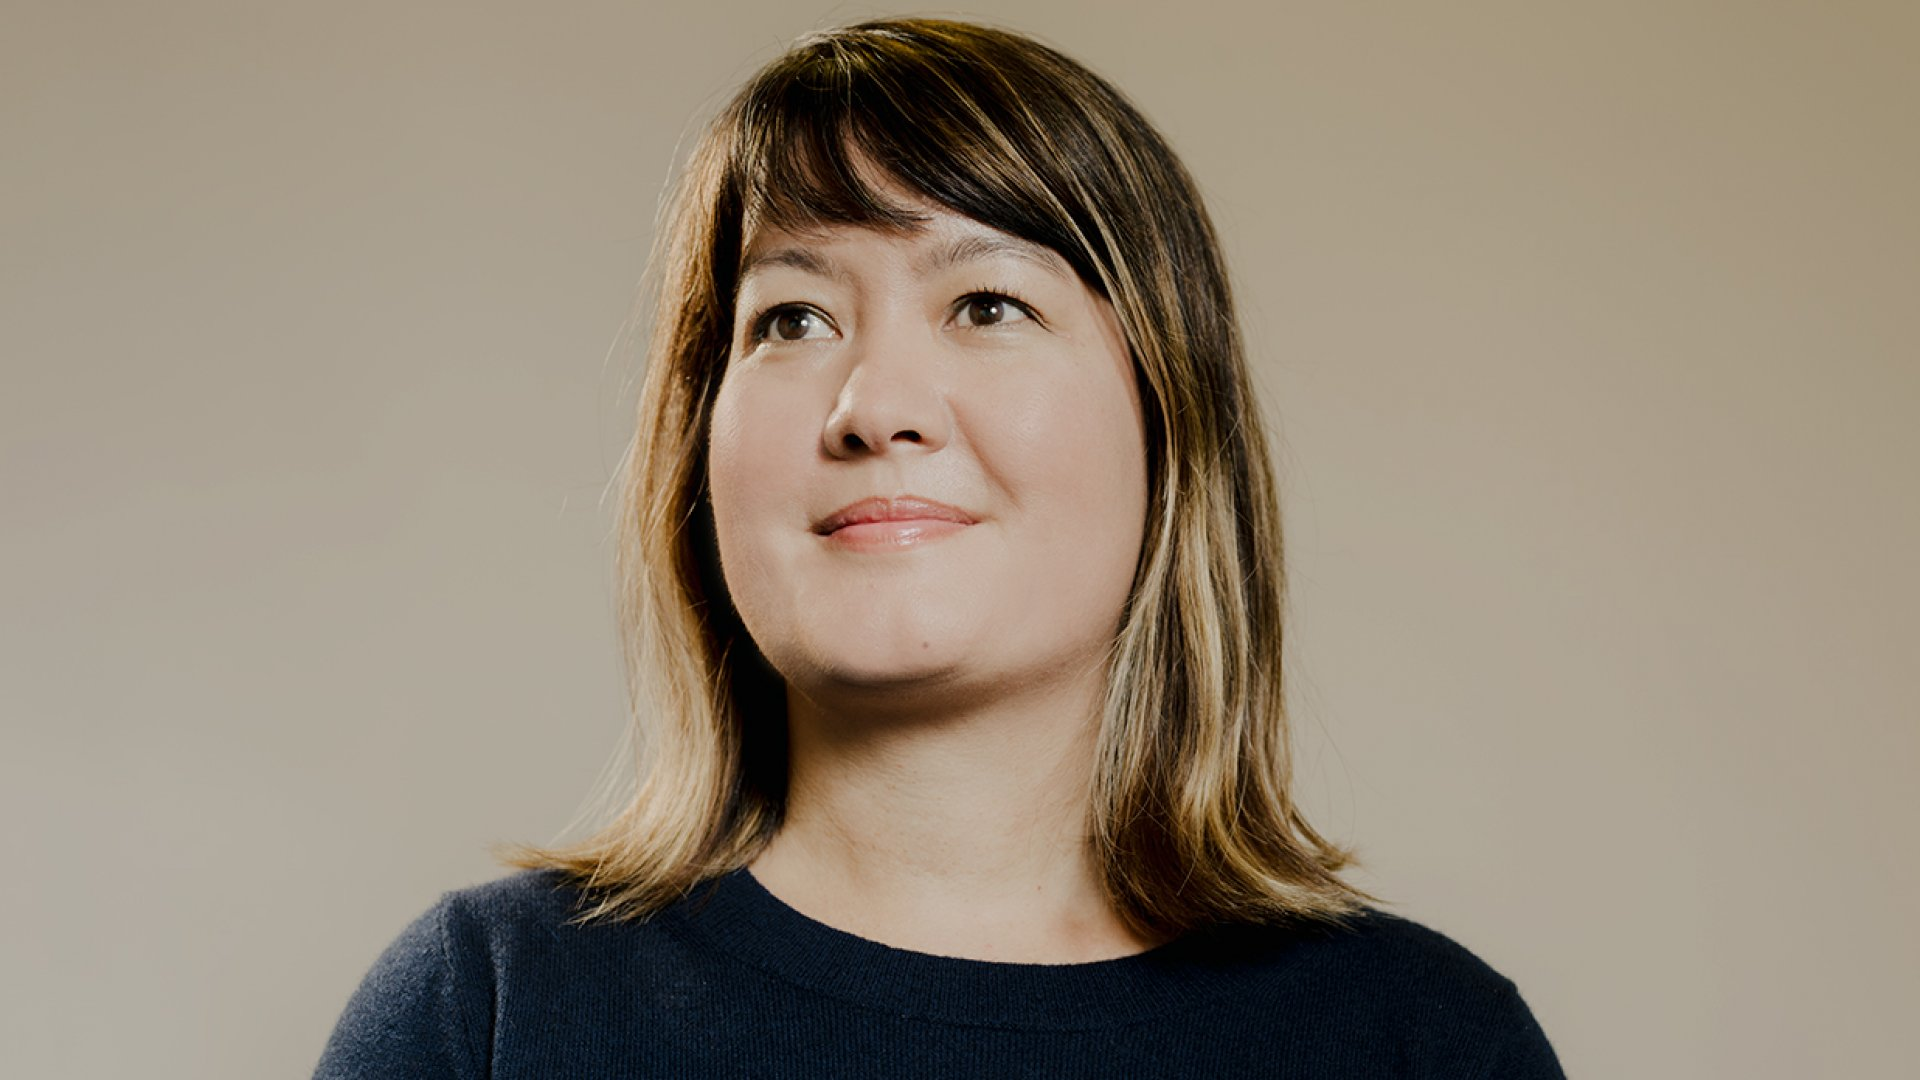 Jennifer Fitzgerald, CEO and co-founder of Policygenius.